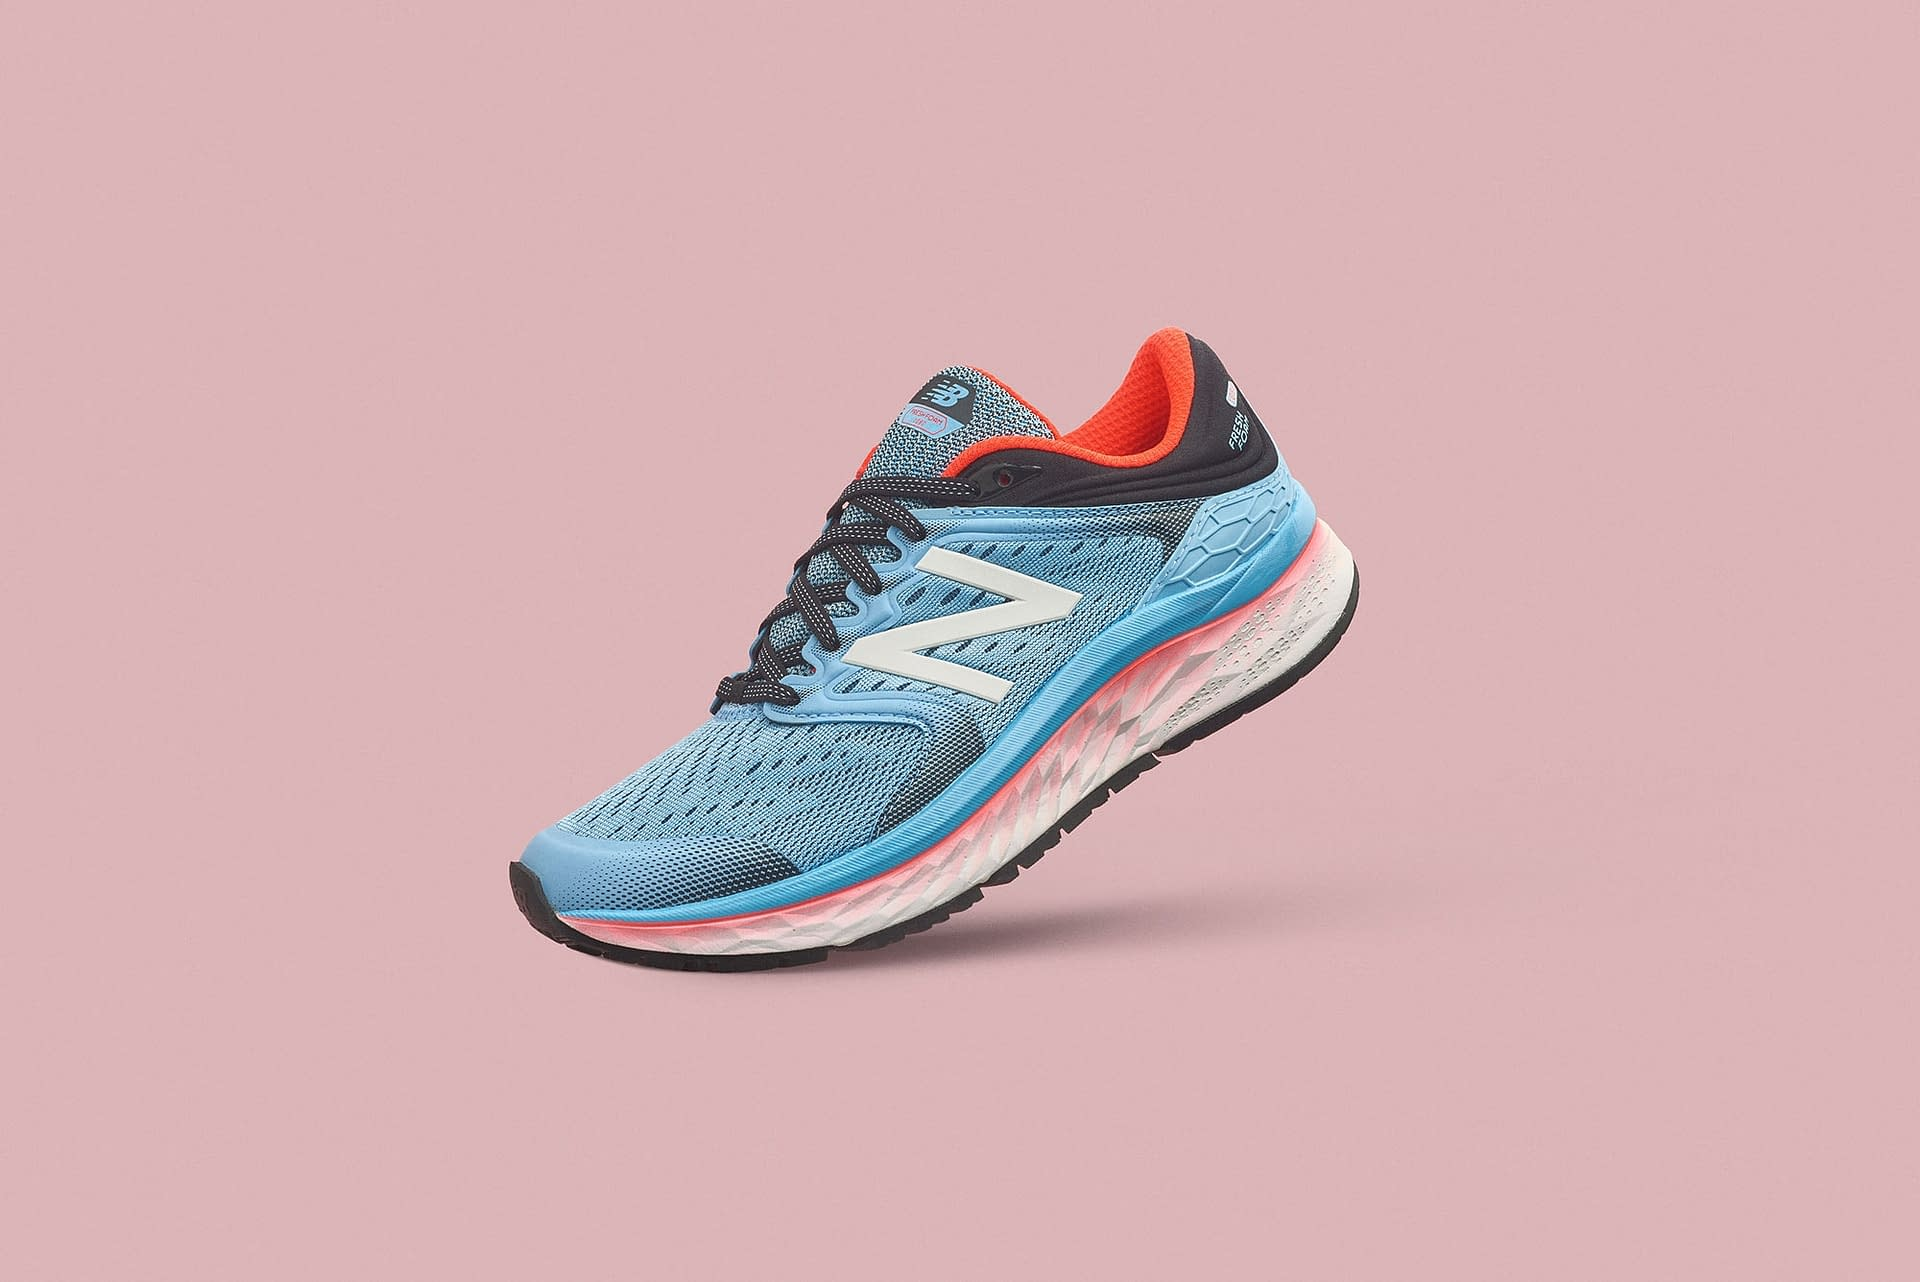 new balance running shoe product photography by smith and Daniels